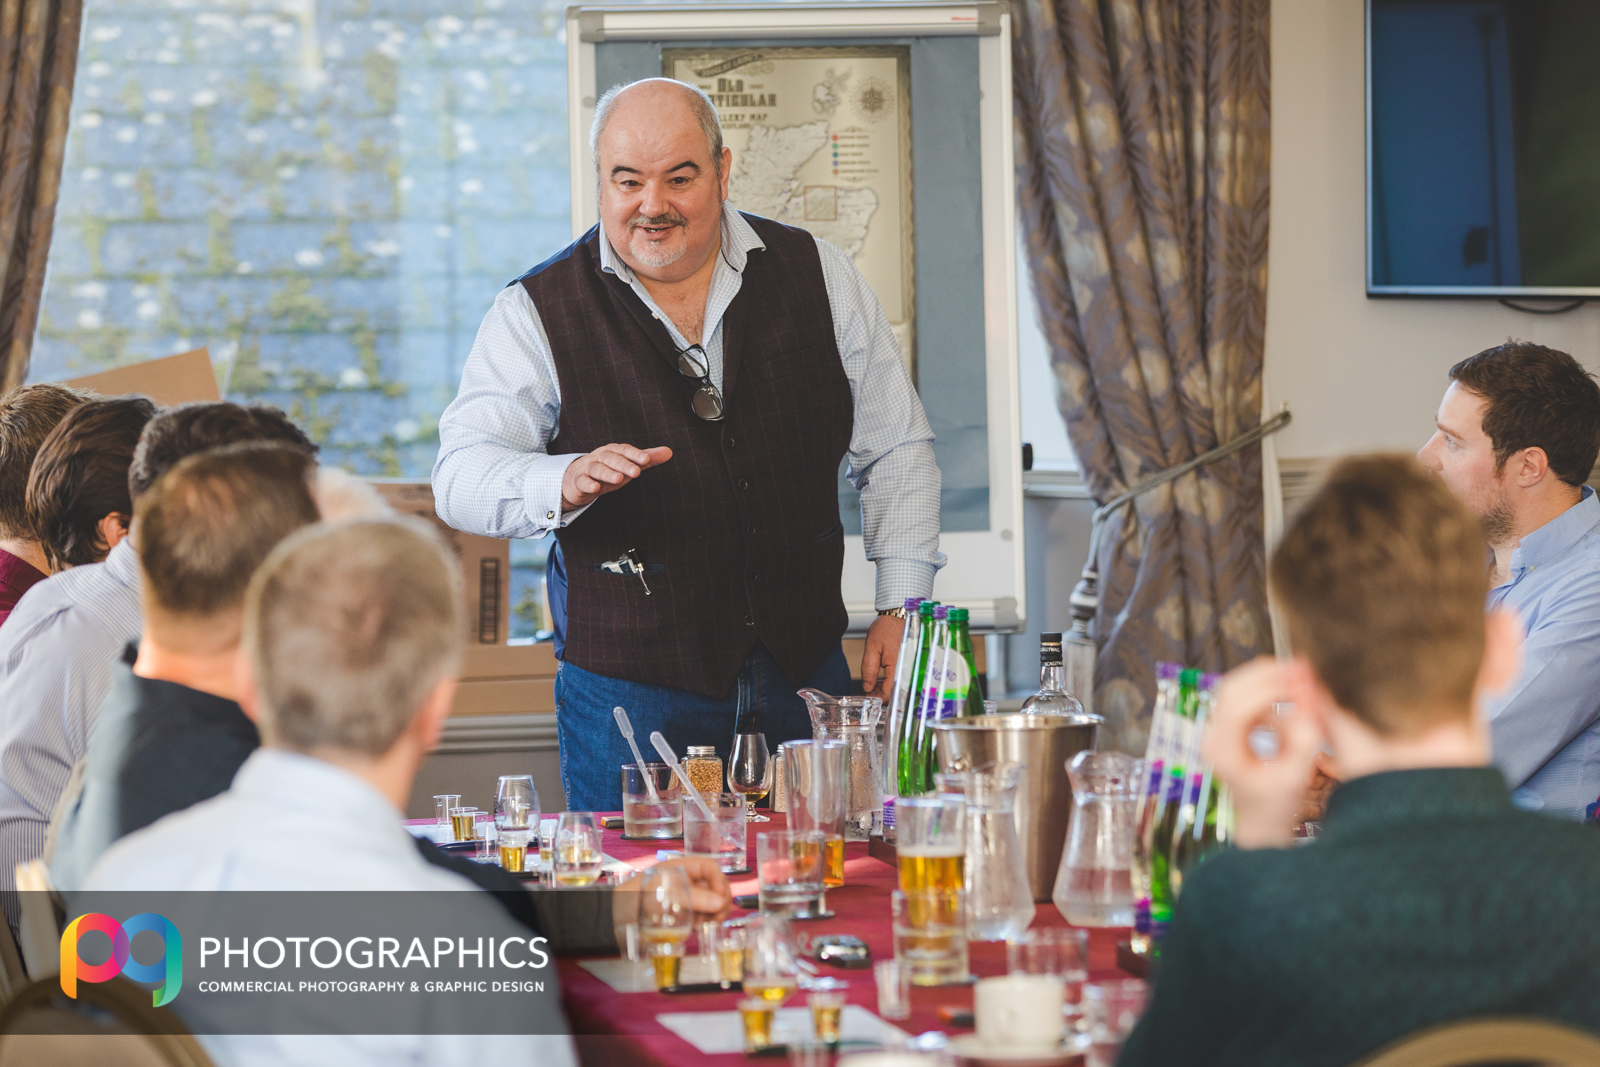 whisky-tasting-event-photography-glasgow-edinburgh-scotland-14.jpg